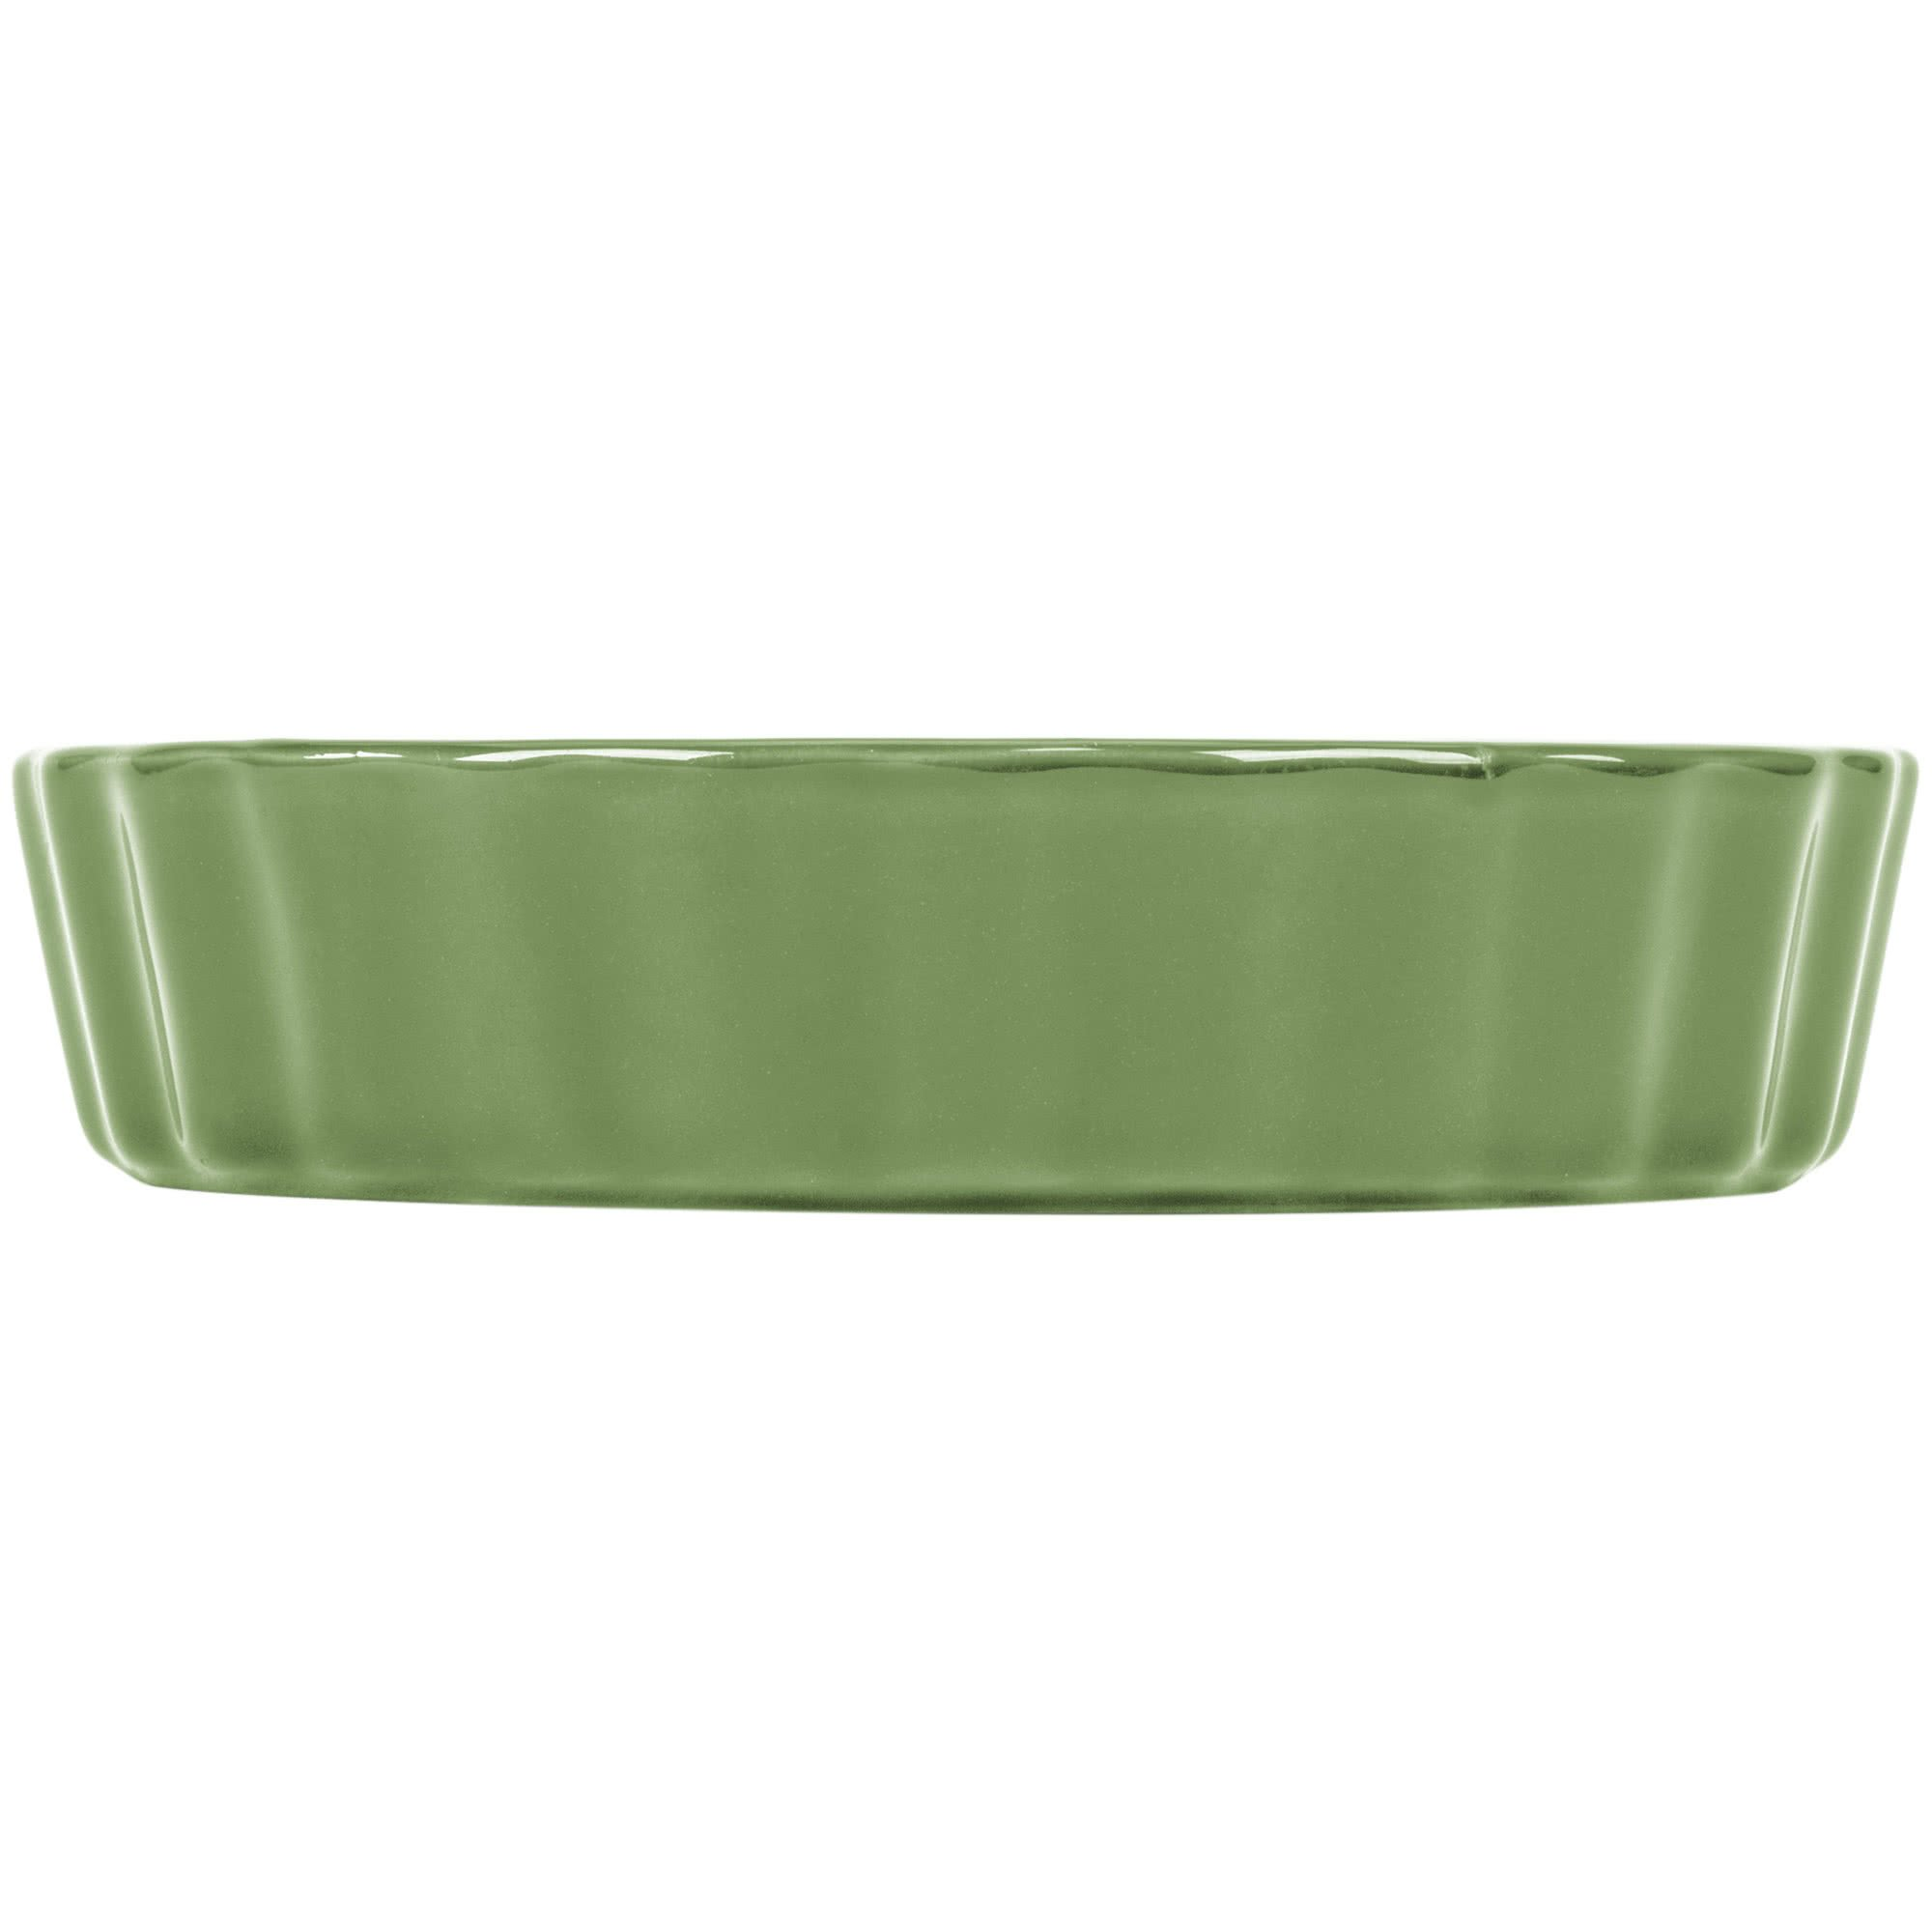 TableTop King QCD-5GRE Festiware Fluted Quiche Dish 5.5 oz. - Green - 24/Case by TableTop King (Image #3)